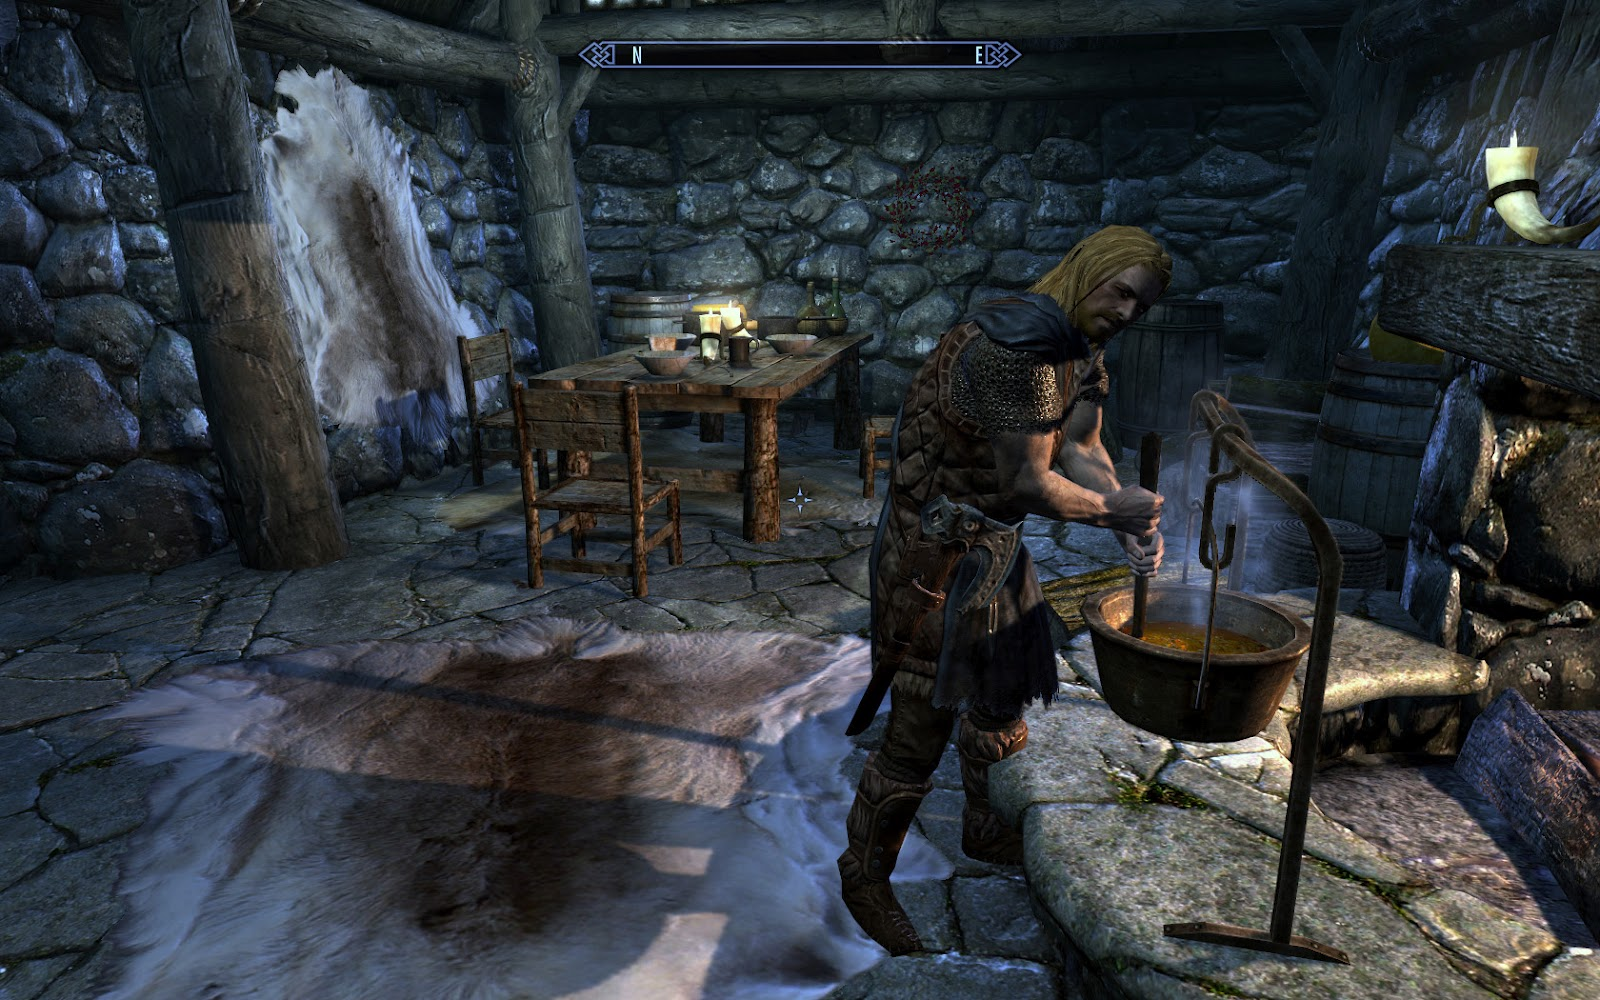 Skyrim Journal: Operation marry Ralof